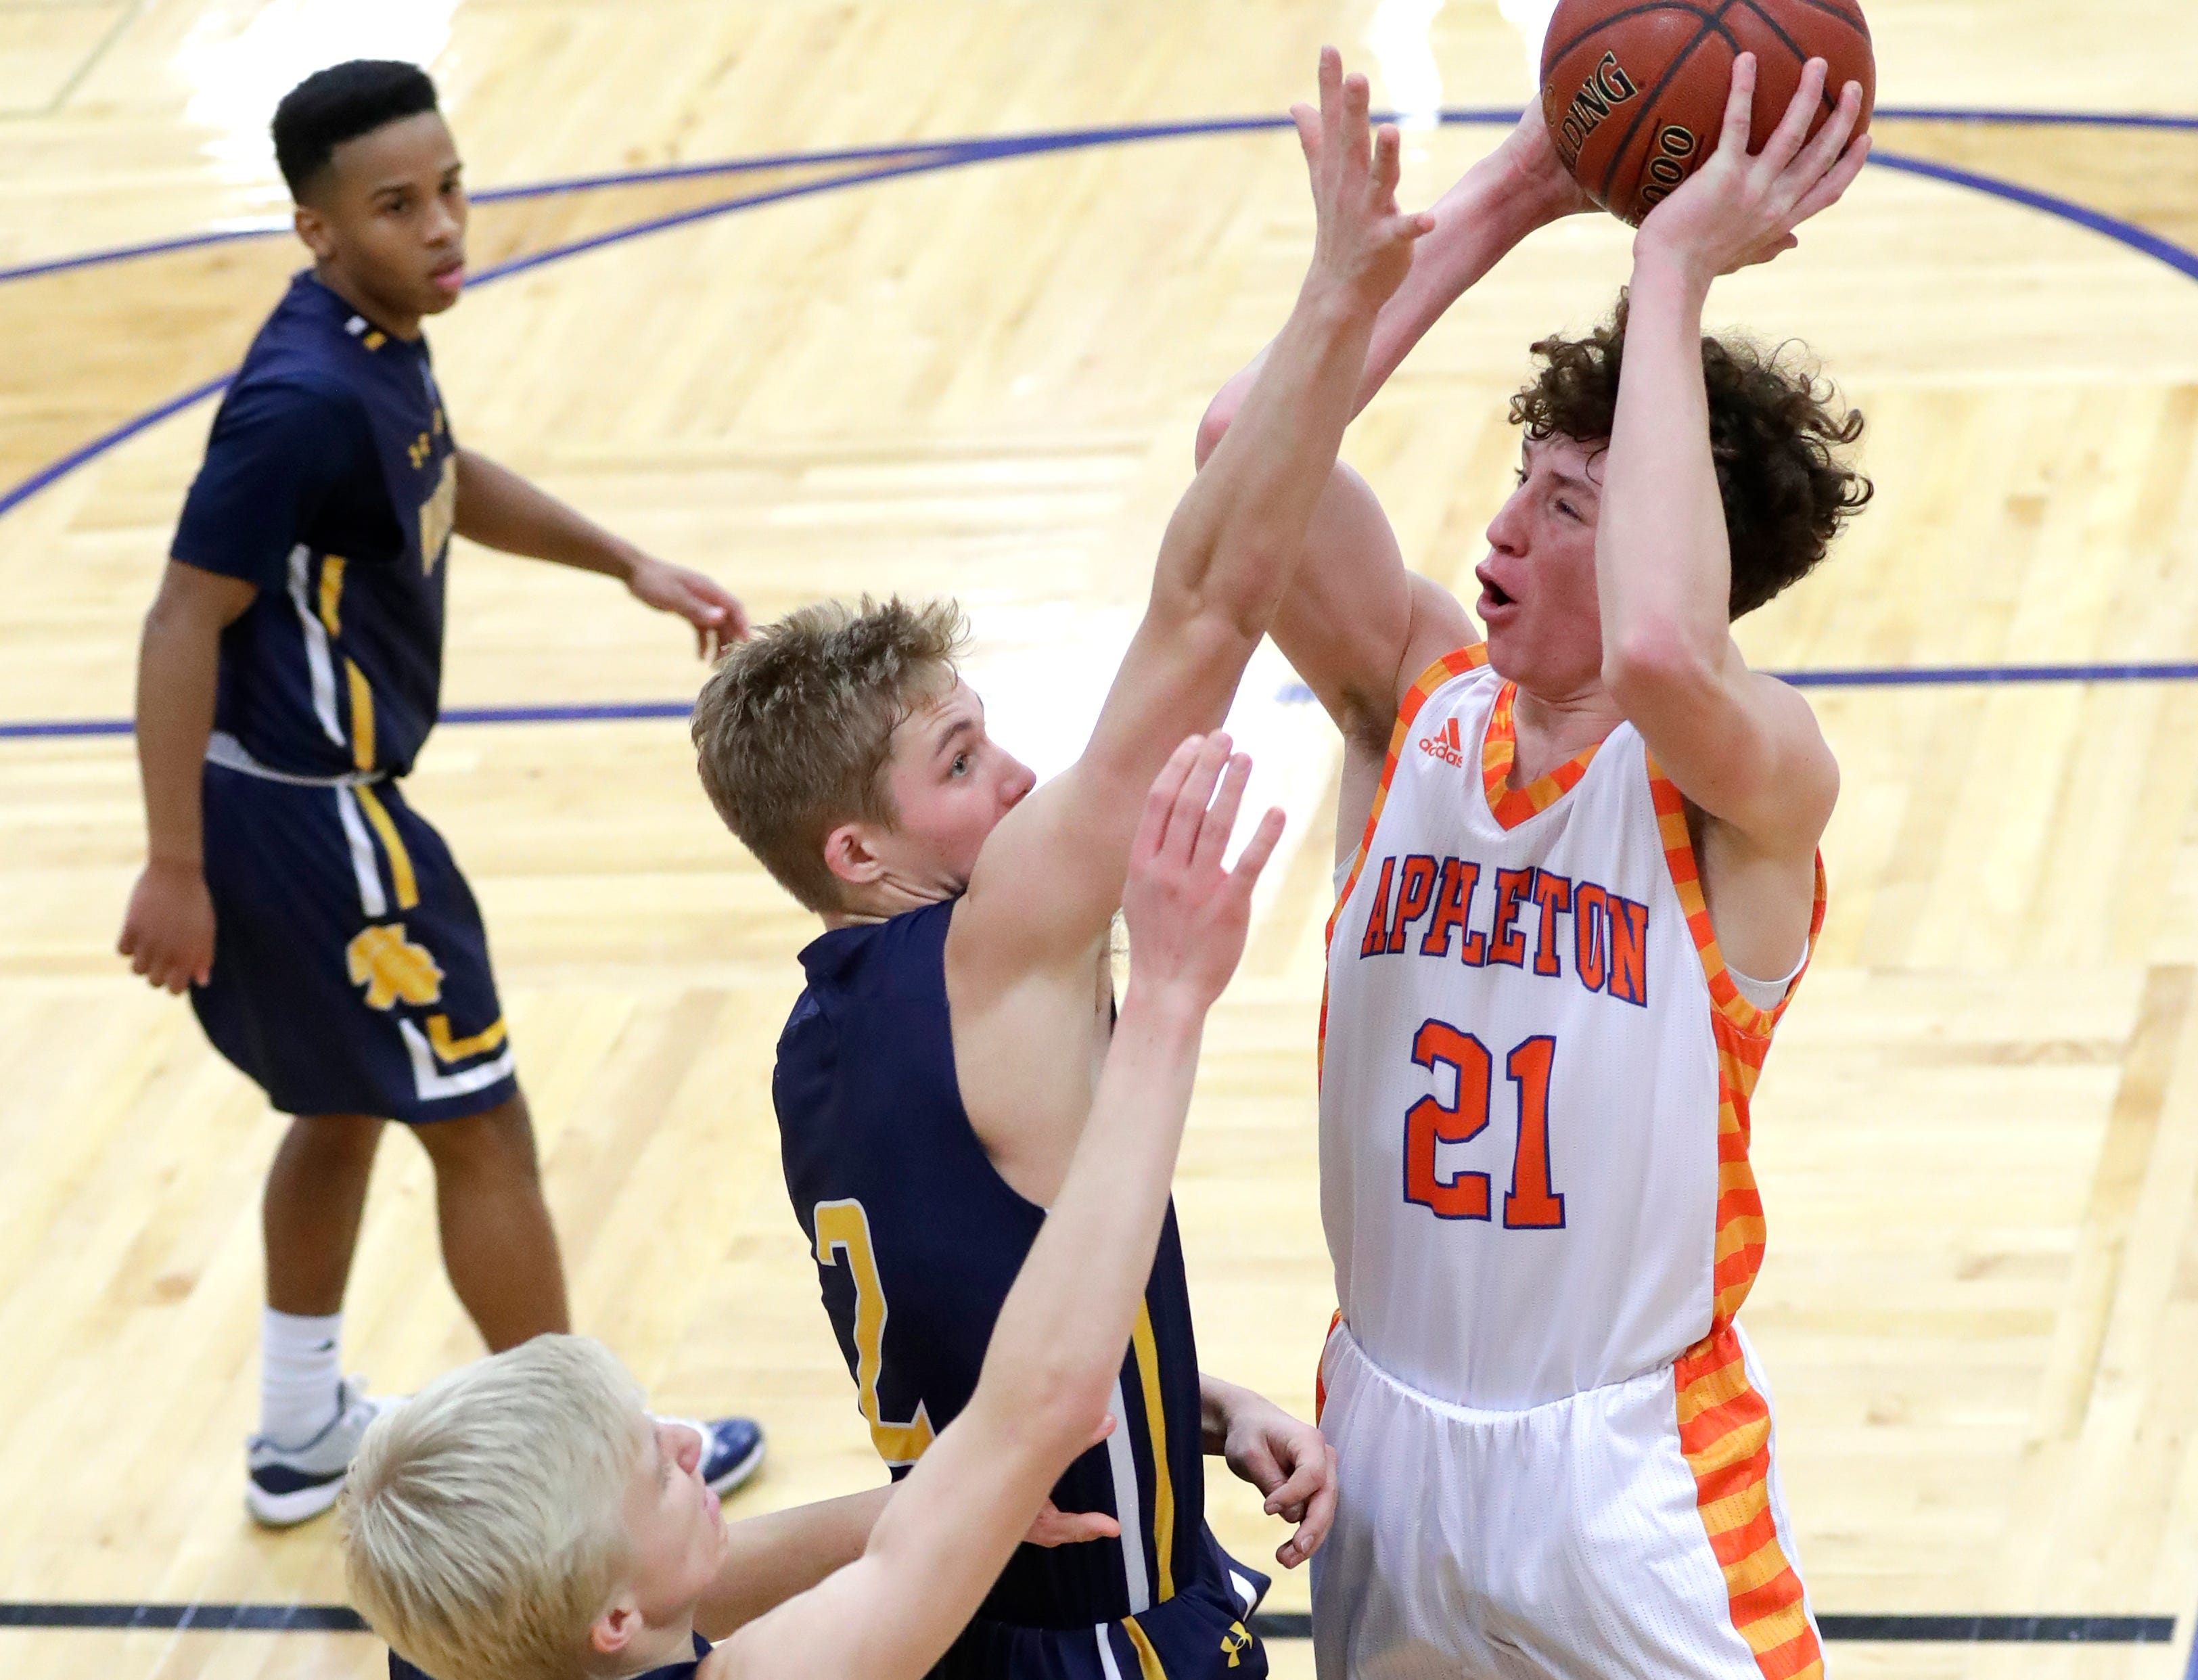 Appleton West  High School's Will Mahoney (21) puts up a shot against Wausau West High School's Ryan Hartman (21) and Mitchell Zahurones (2) during their boys basketball game Friday, December 28, 2018, in Appleton, Wis. Dan Powers/USA TODAY NETWORK-Wisconsin